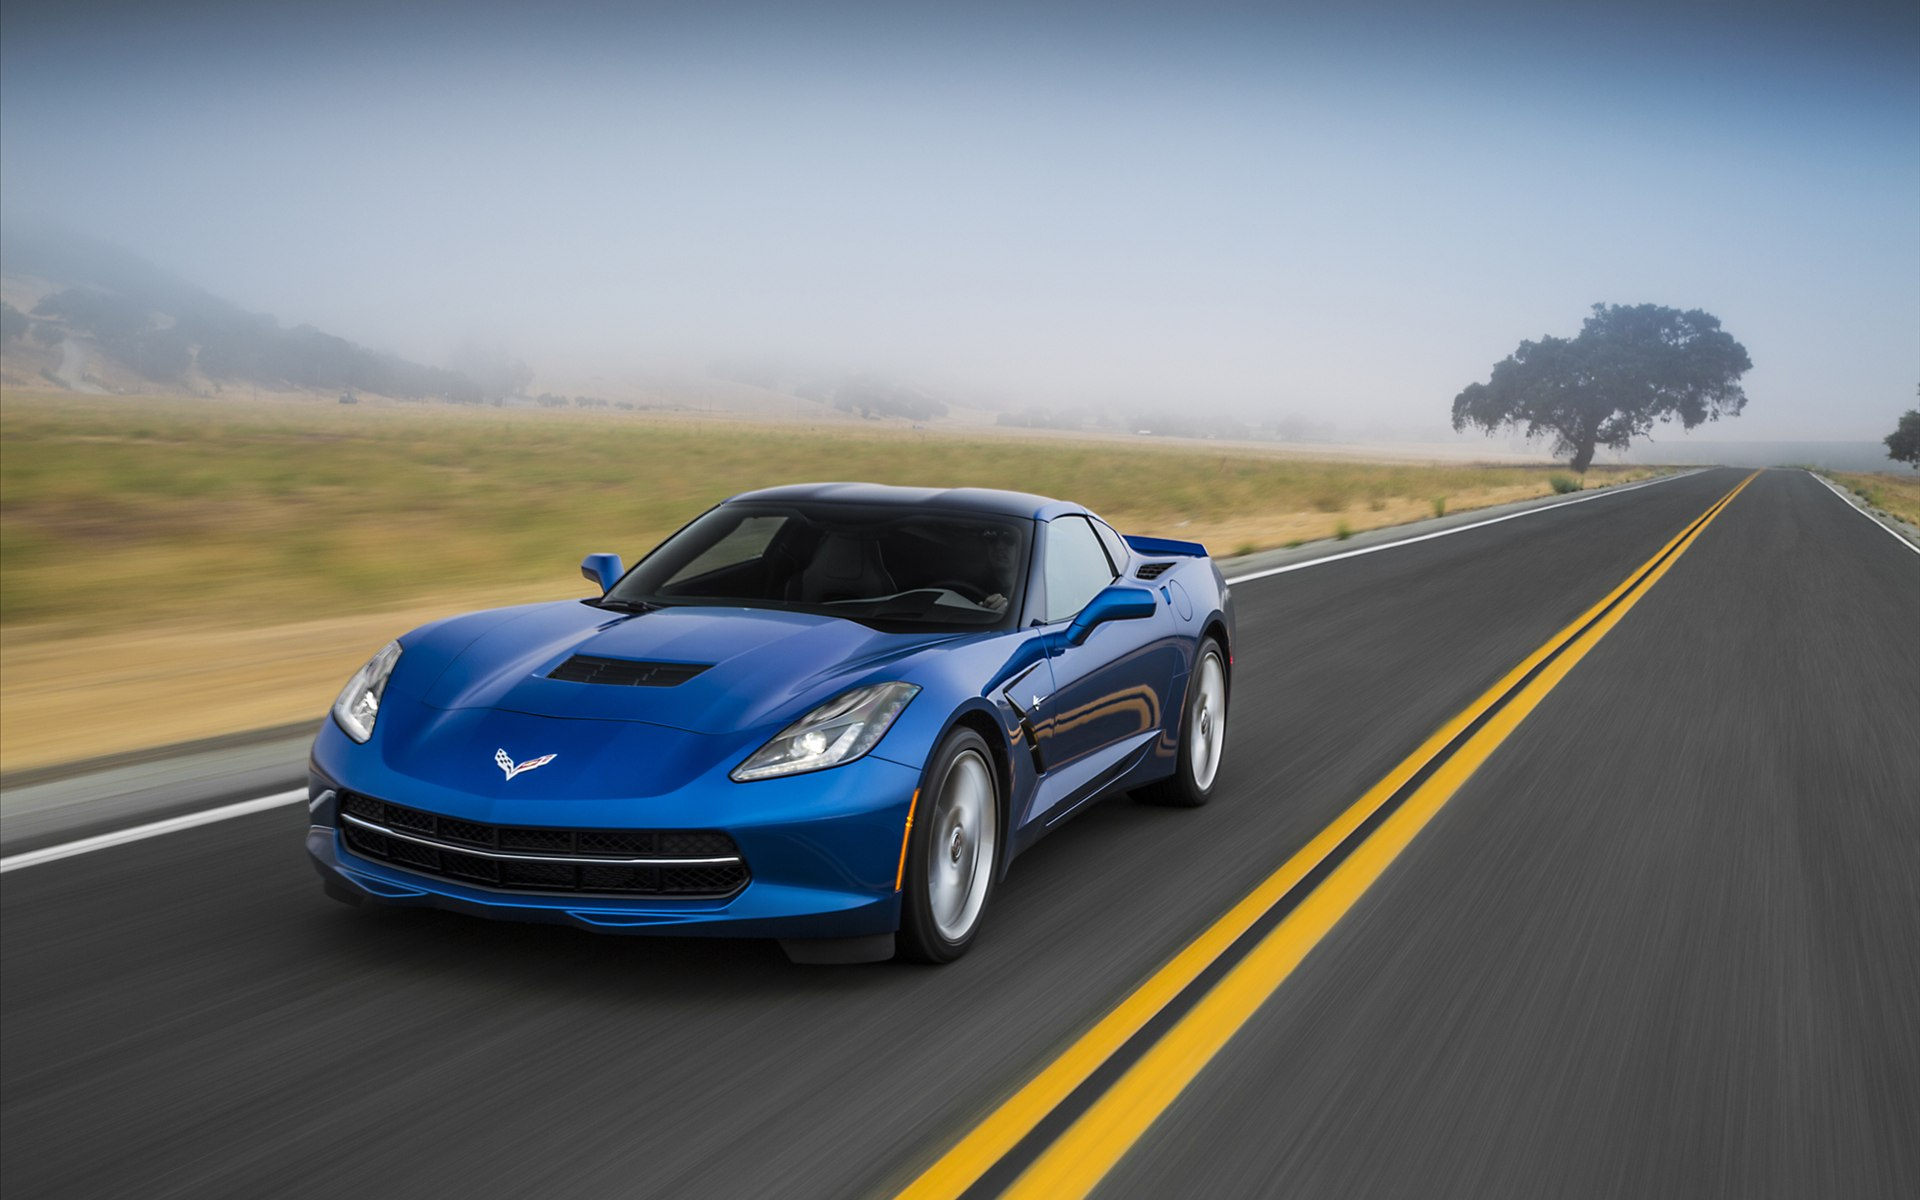 Chevrolet Corvette C7 Stingray 2014 Widescreen Exotic Car Wallpapers 1920x1200